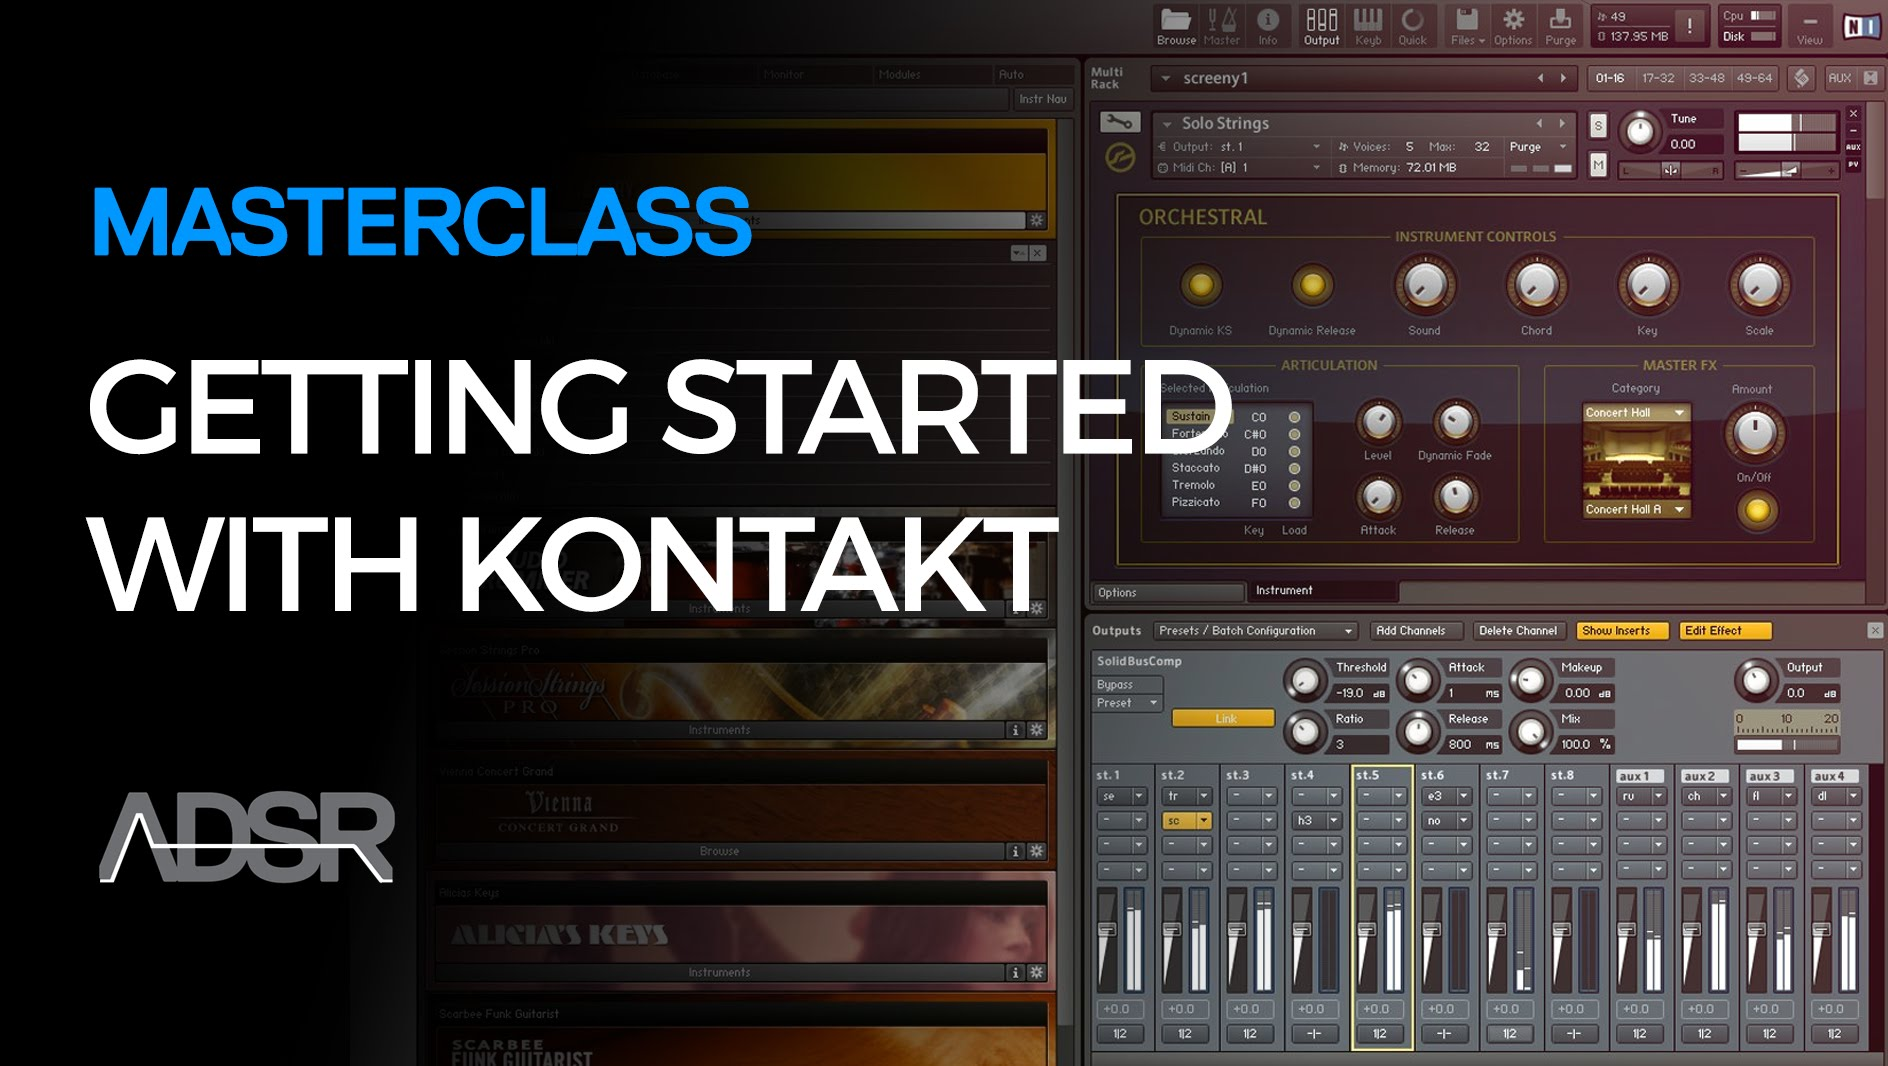 ADSR Sounds Getting Started With Kontakt (2016)